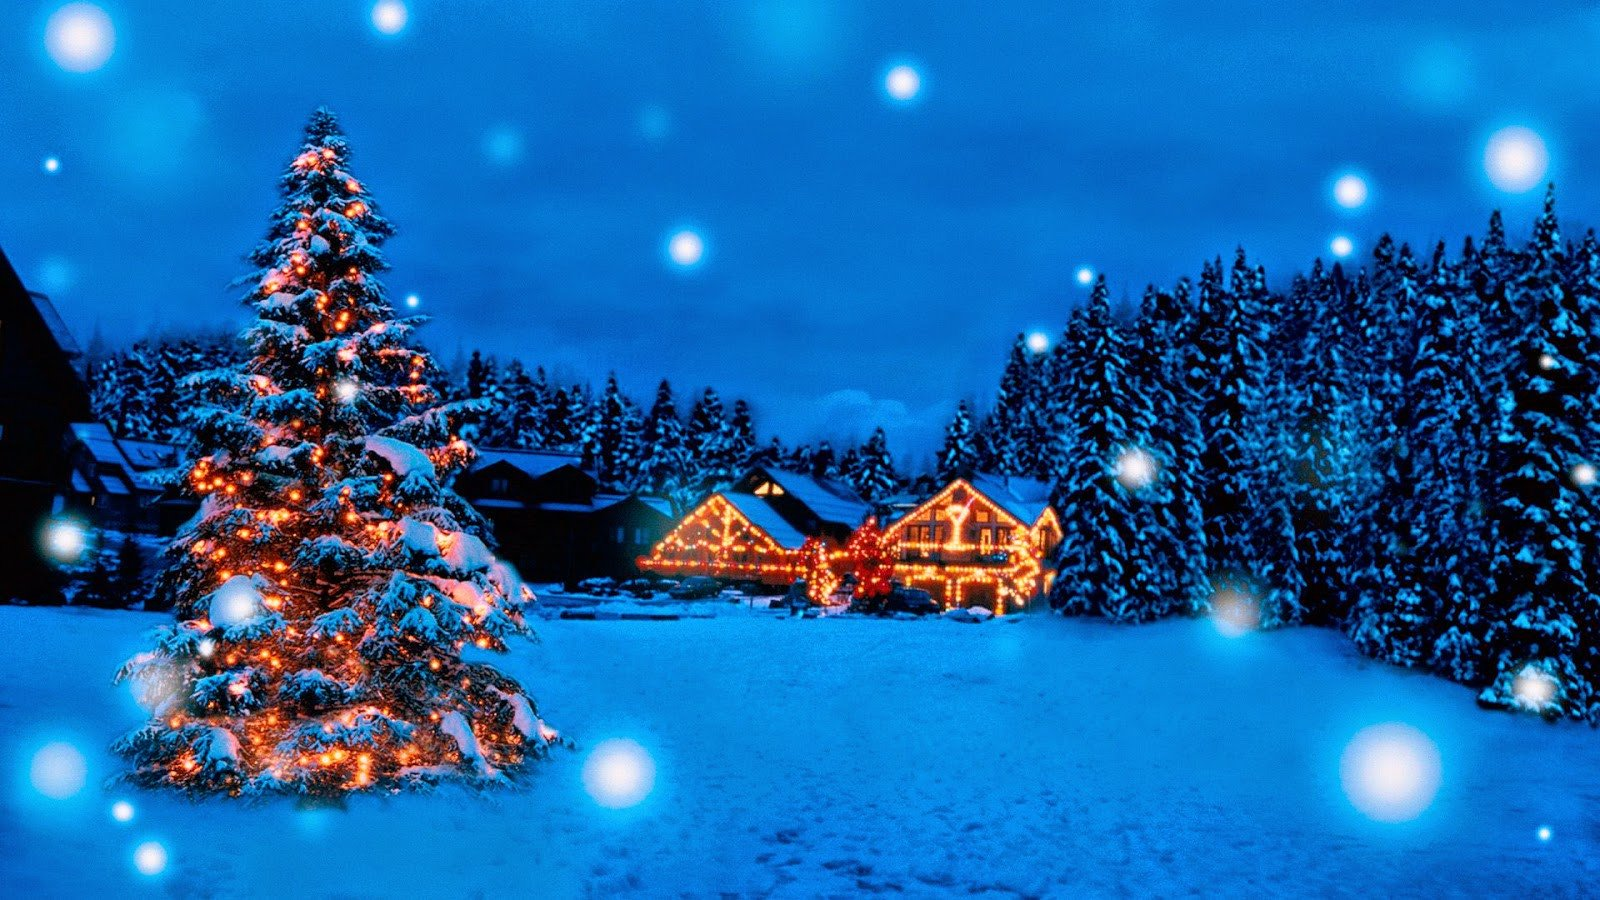 Free Christmas Desktop Wallpaper Desktop Quality Hd Wallpapers 1080p Free Download